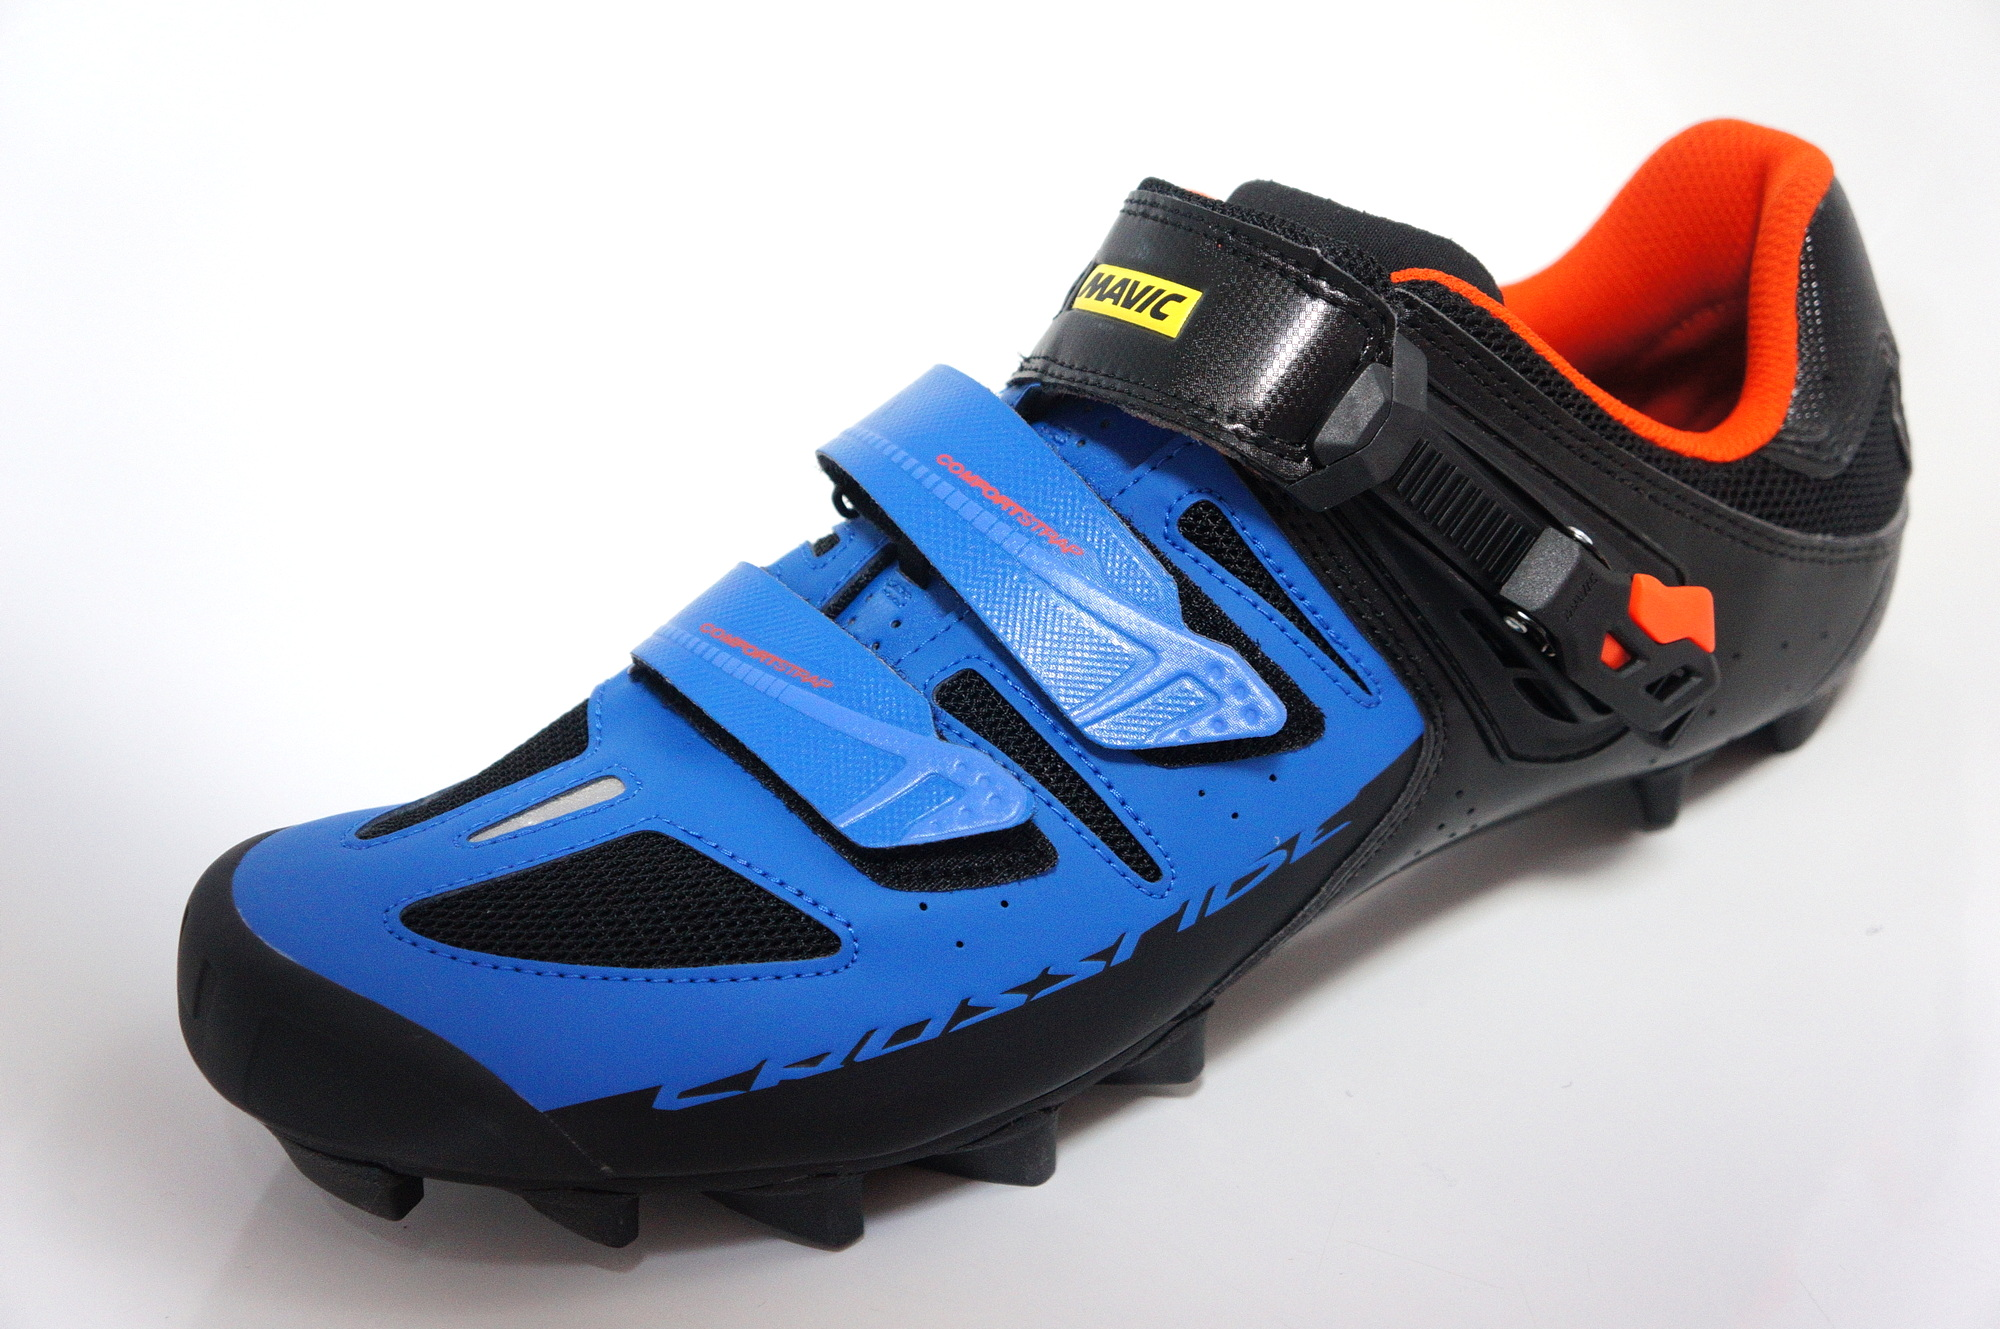 Mavic Crossride SL Elite shoes